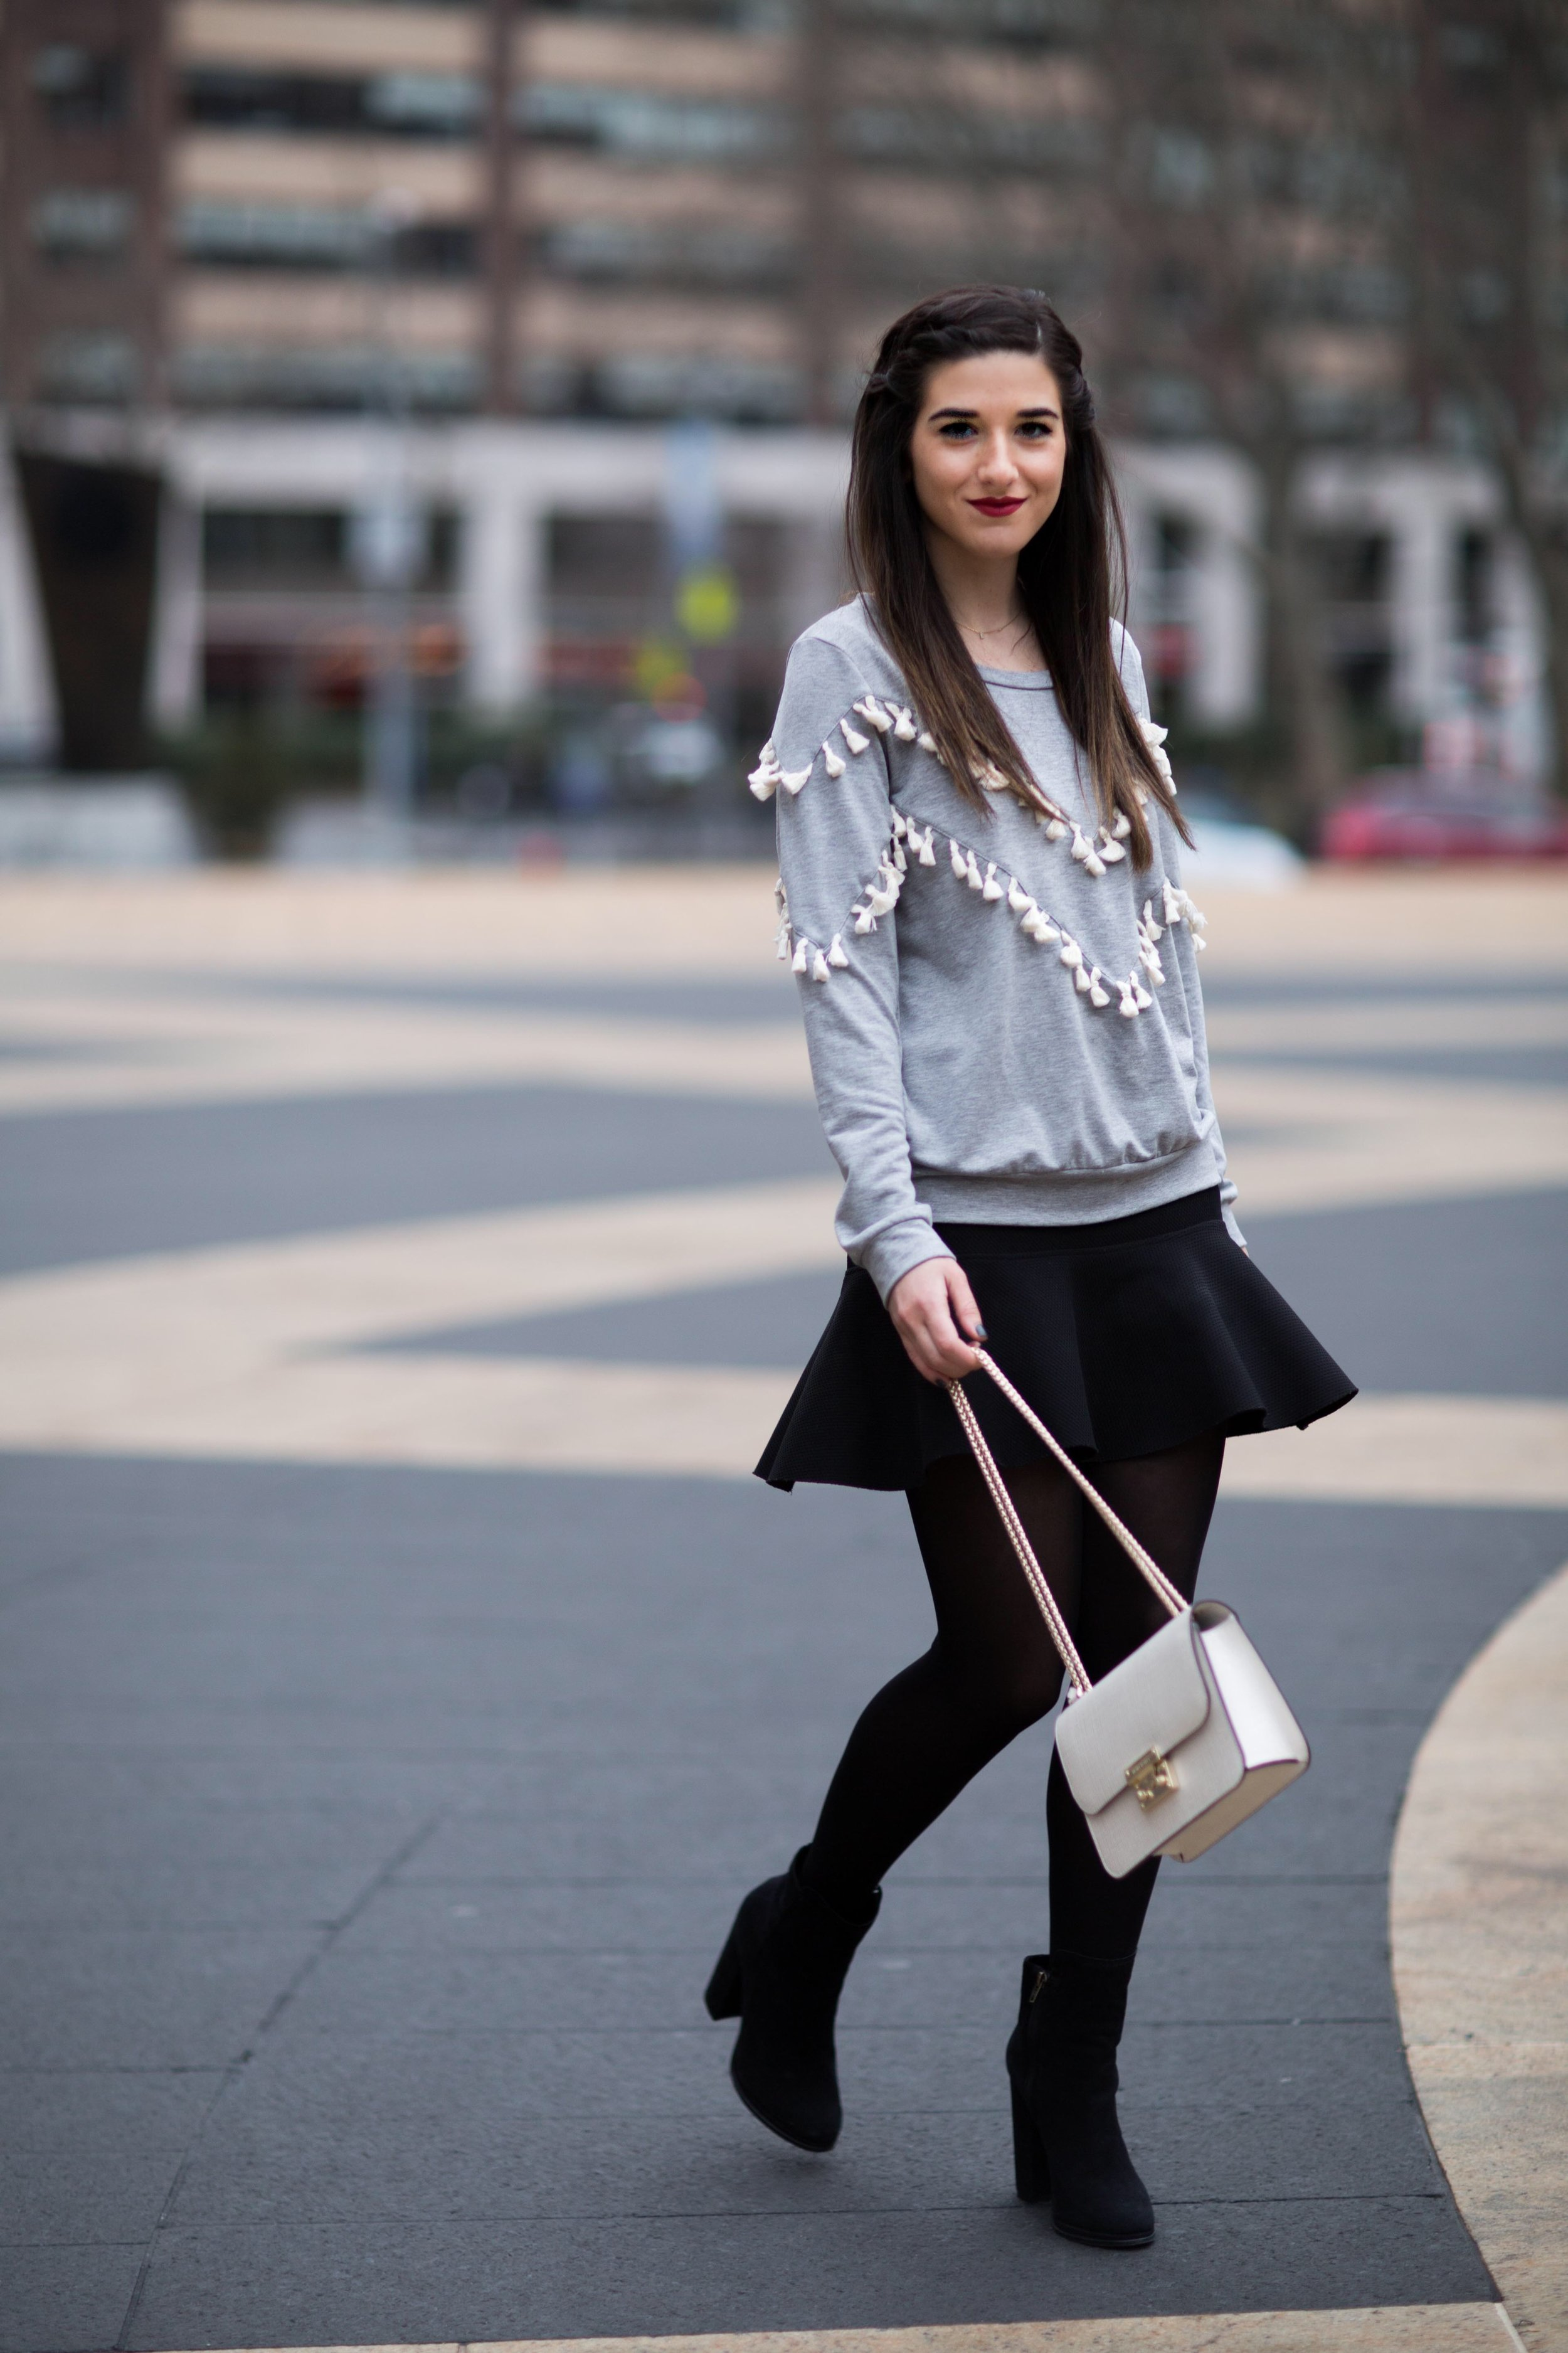 Grey Tassel Sweatshirt Everything You Wanted To Know About Blog Interns Esther Santer Fashion Blog NYC Street Style Blogger Outfit OOTD Trendy Henri Bendel Waldorf Party Bag Black Mini Skirt Booties Shoes Cozy Tights Photoshoot Model Girl Women  Hair.jpg